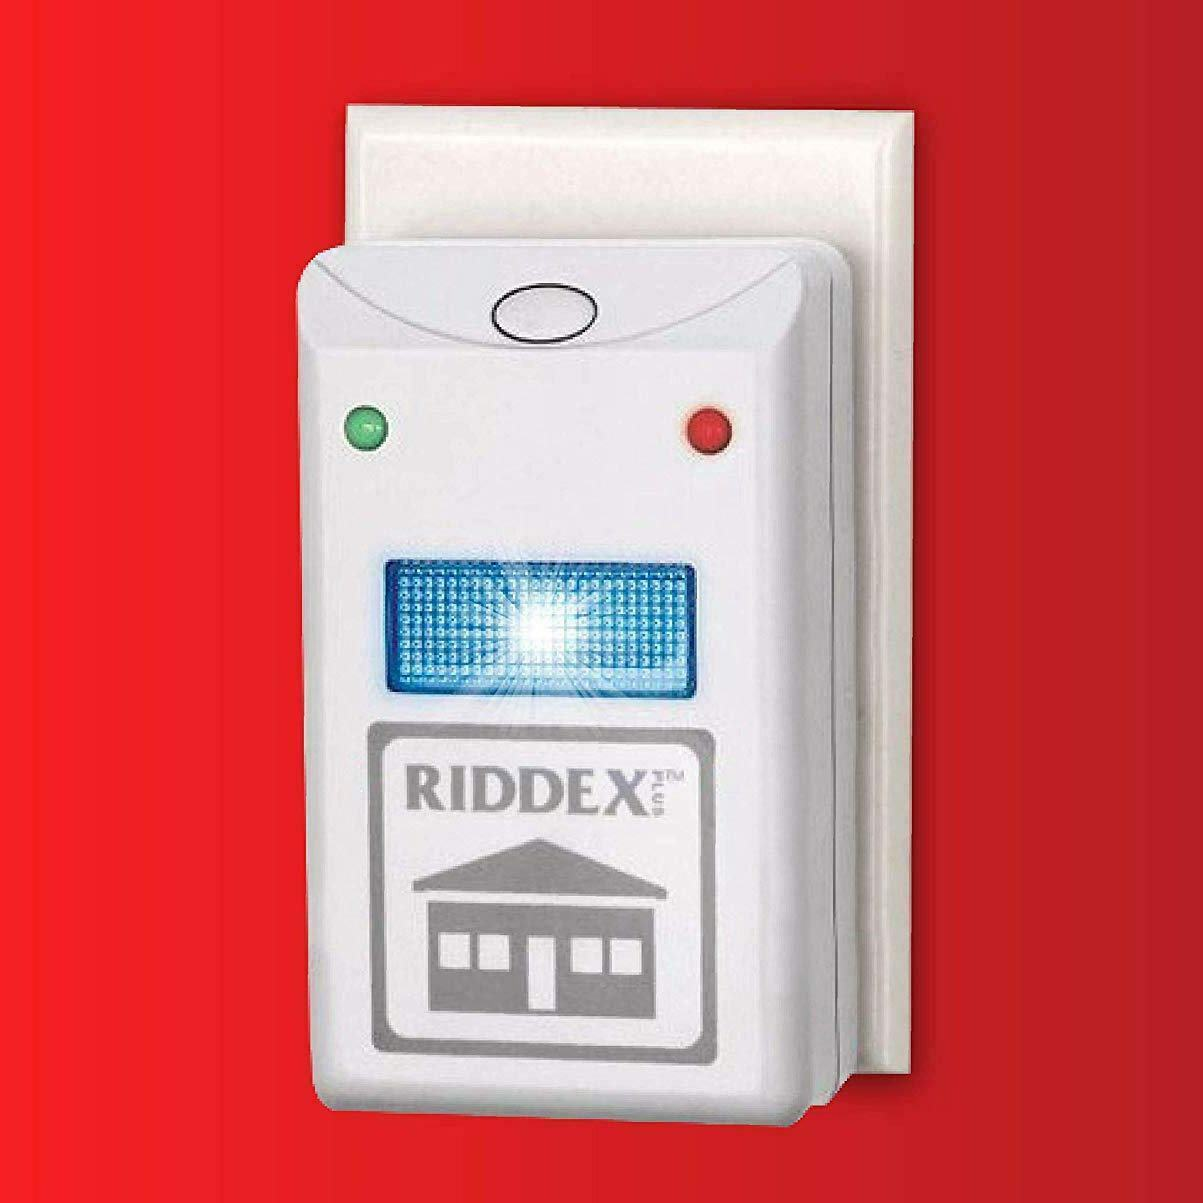 Riddex Plus Pest Repelling Aid, with built-in Night Light